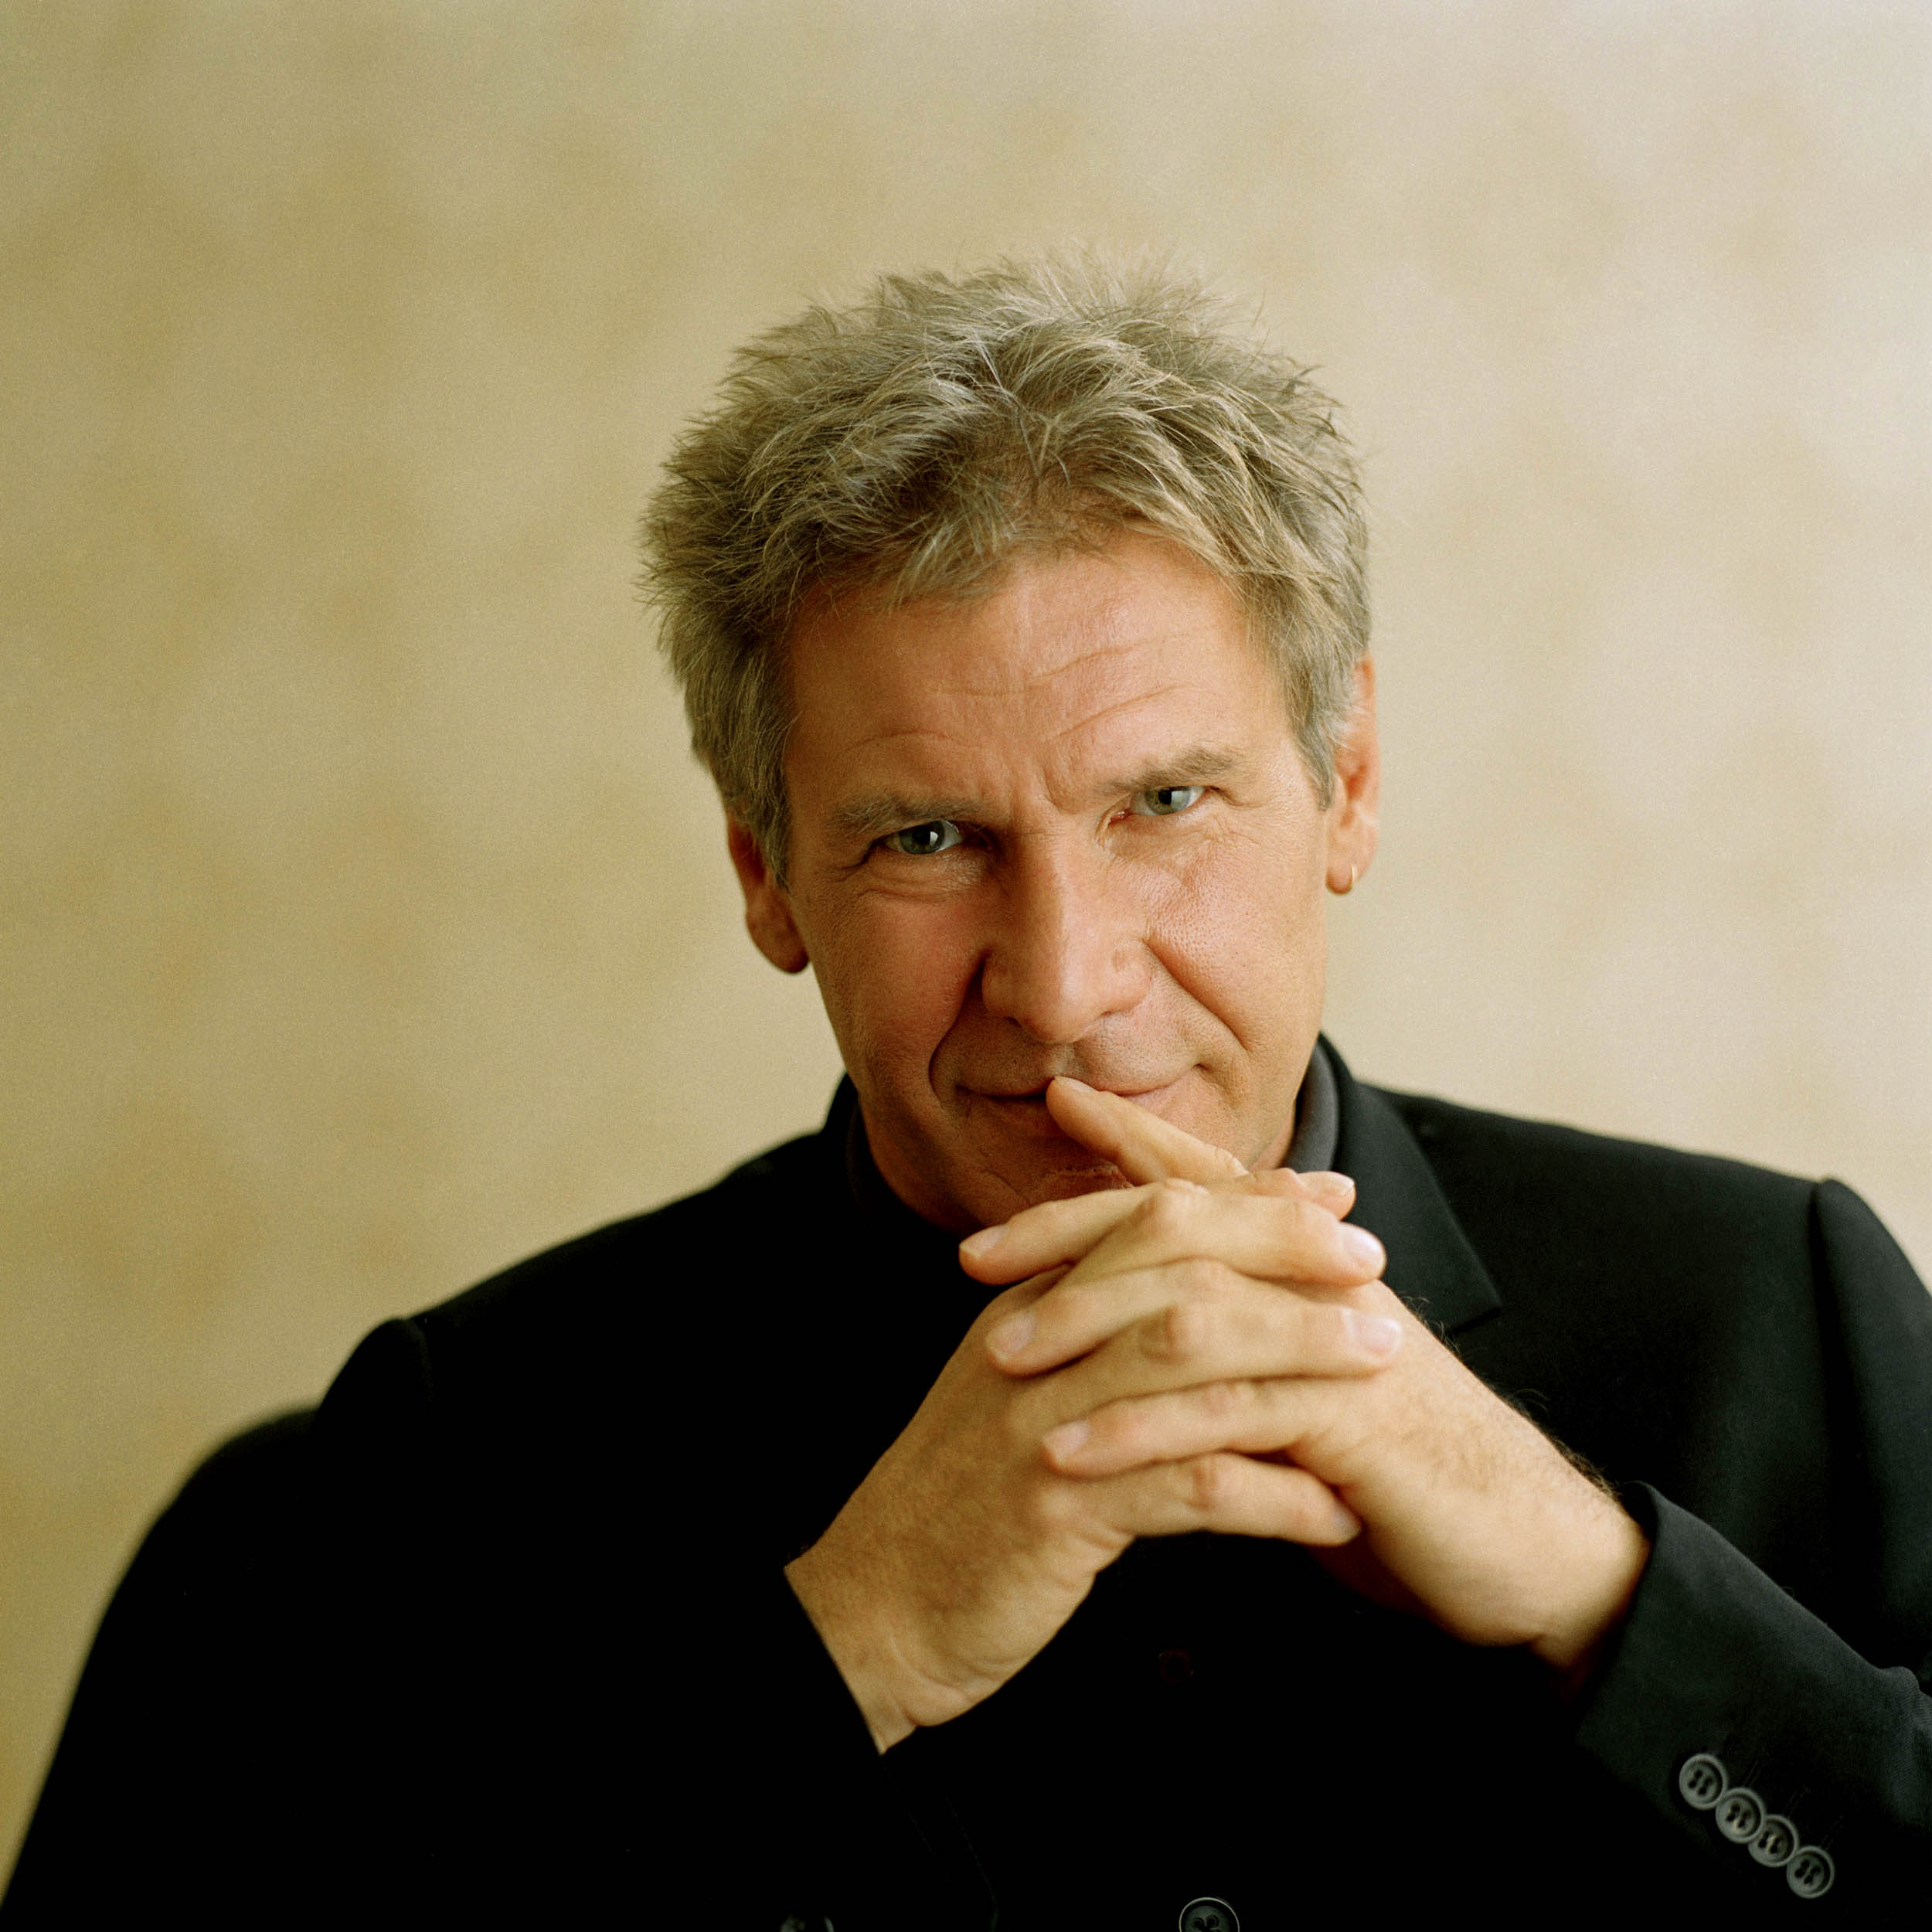 photo tabloid model: harrison ford - images gallery